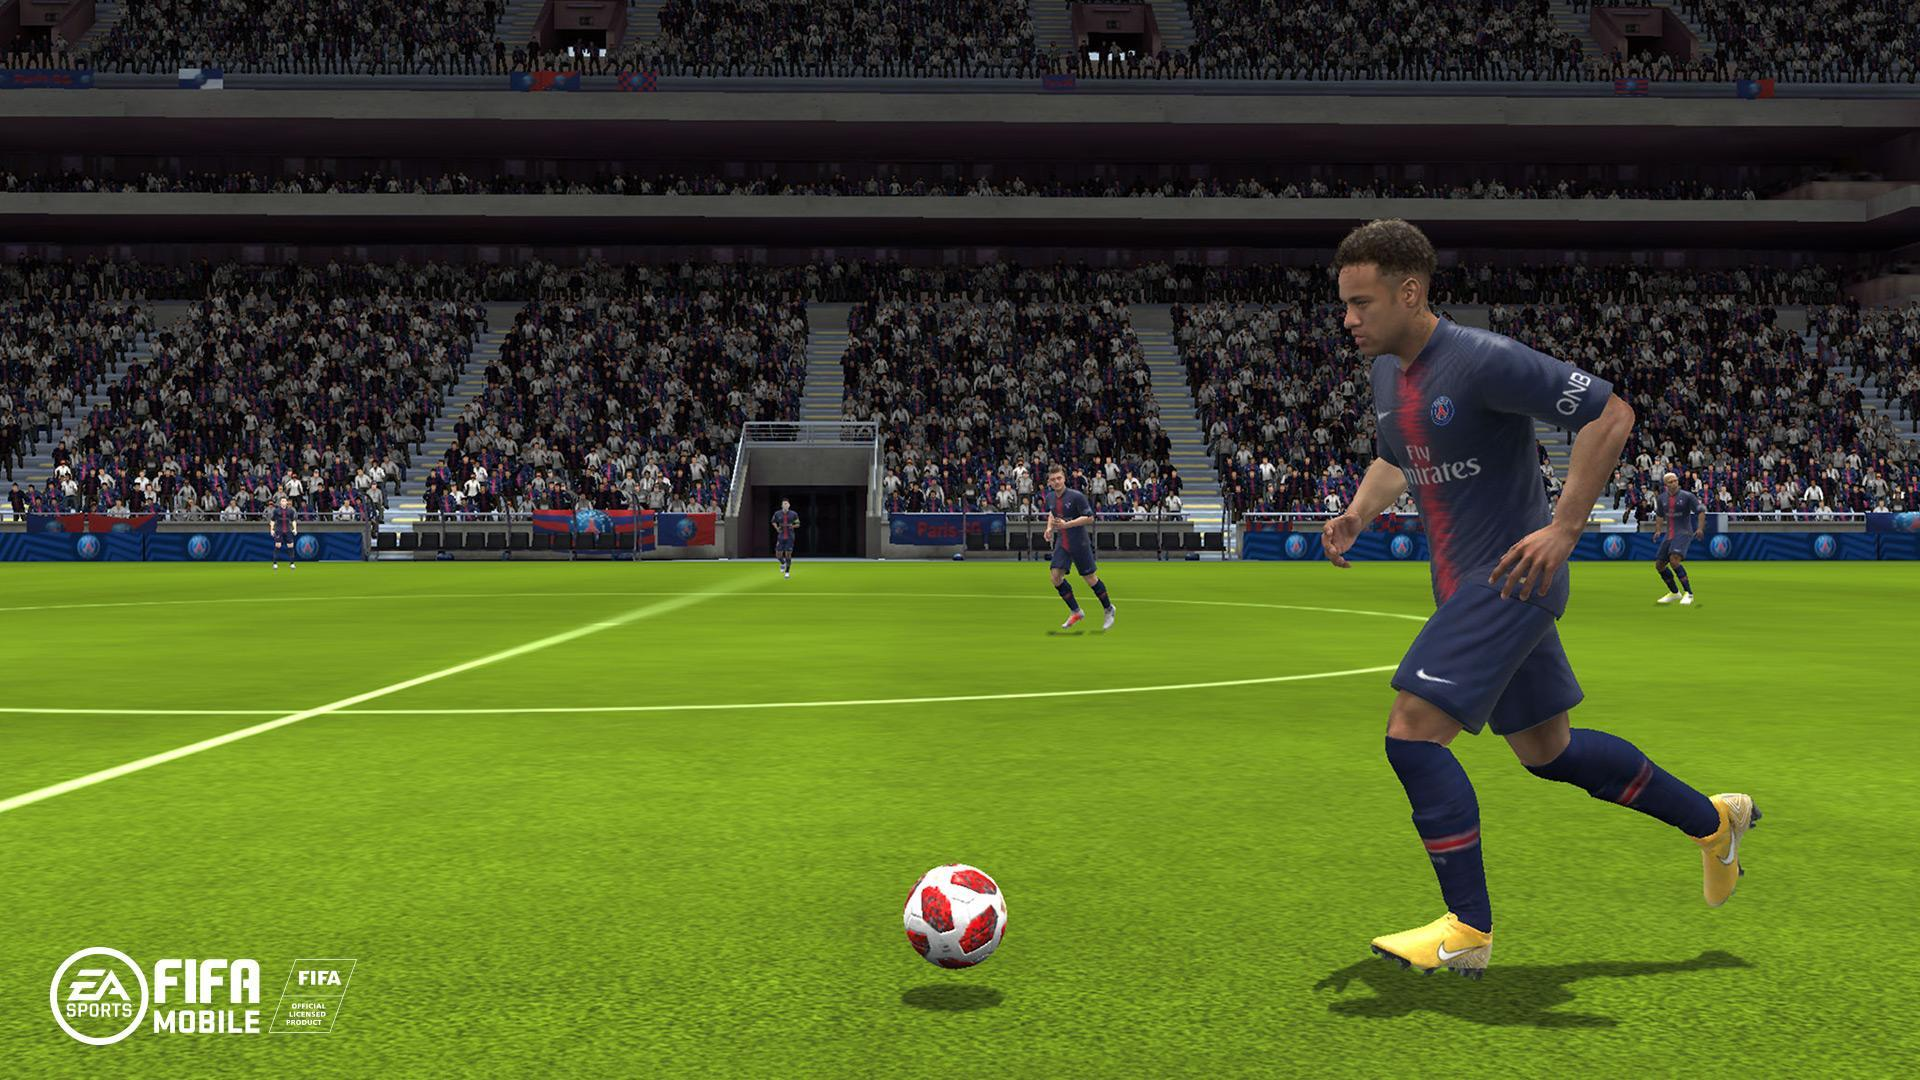 FIFA SOCCER: GAMEPLAY BETA for Android - APK Download